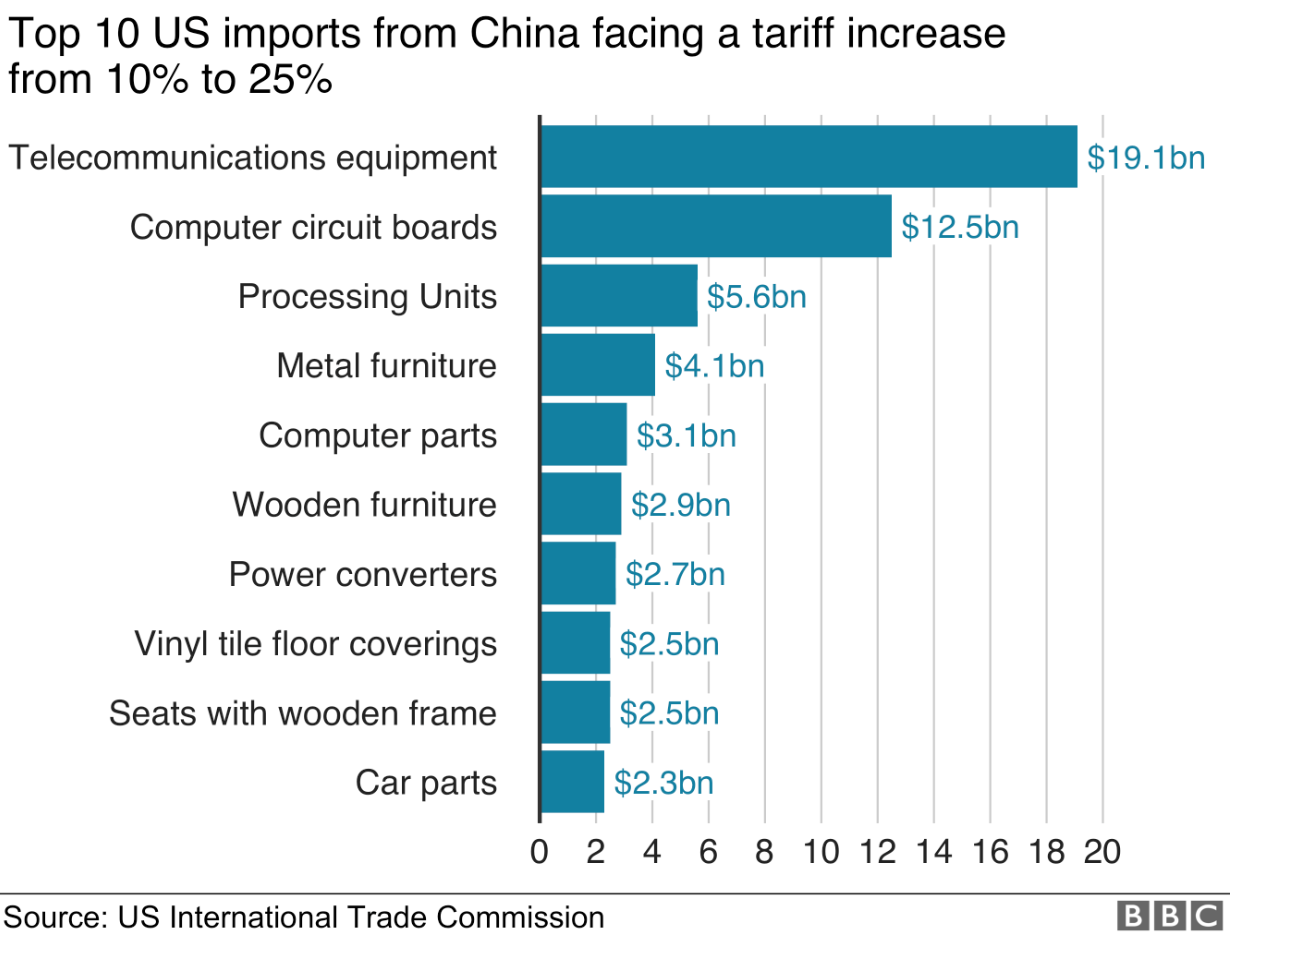 graph showing top 10 US imports from China facing a tariff increase from 10% to 25%